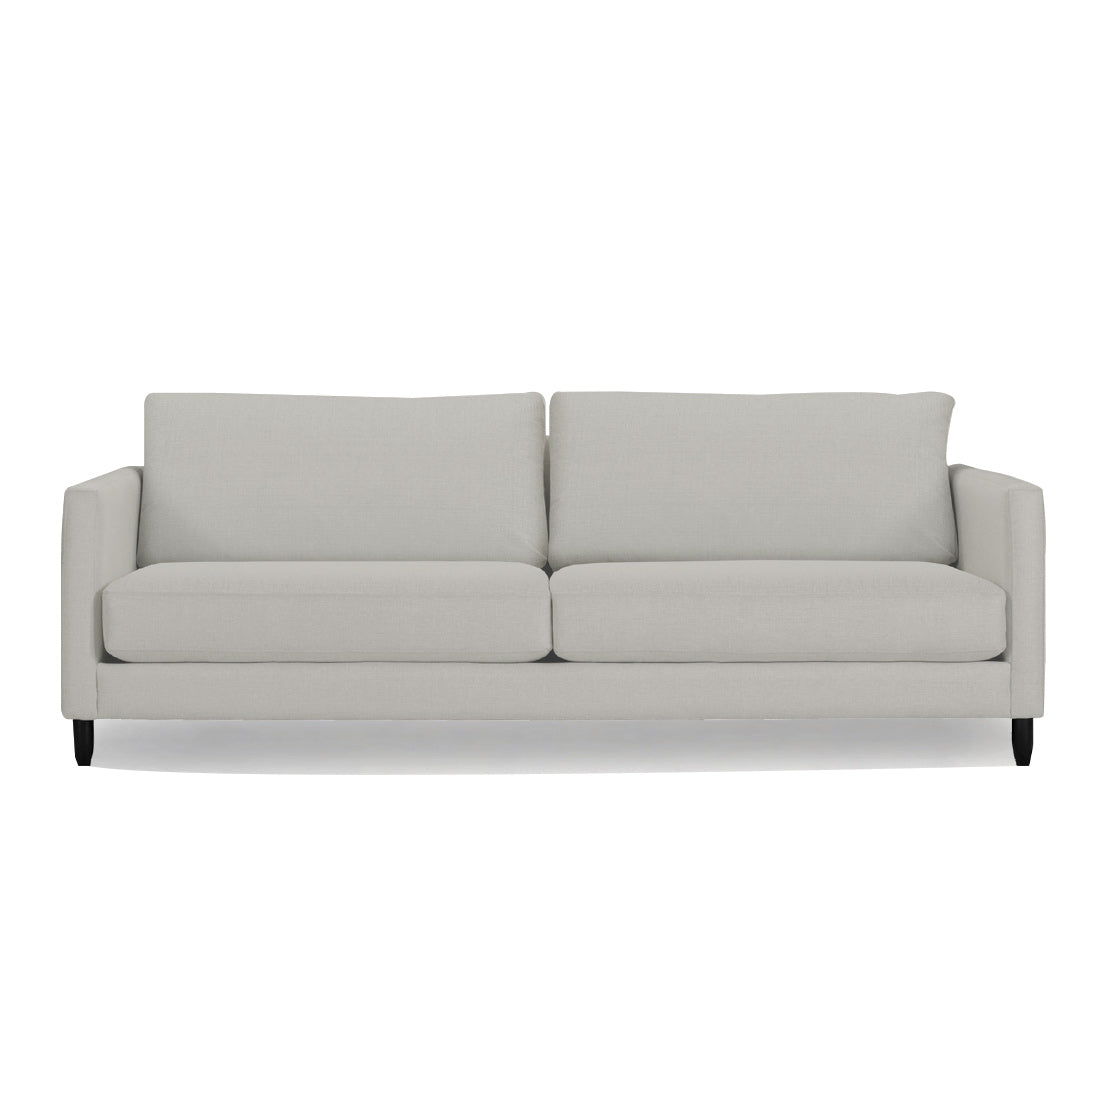 "Jude 85"" Sofa   Made-to-Order"